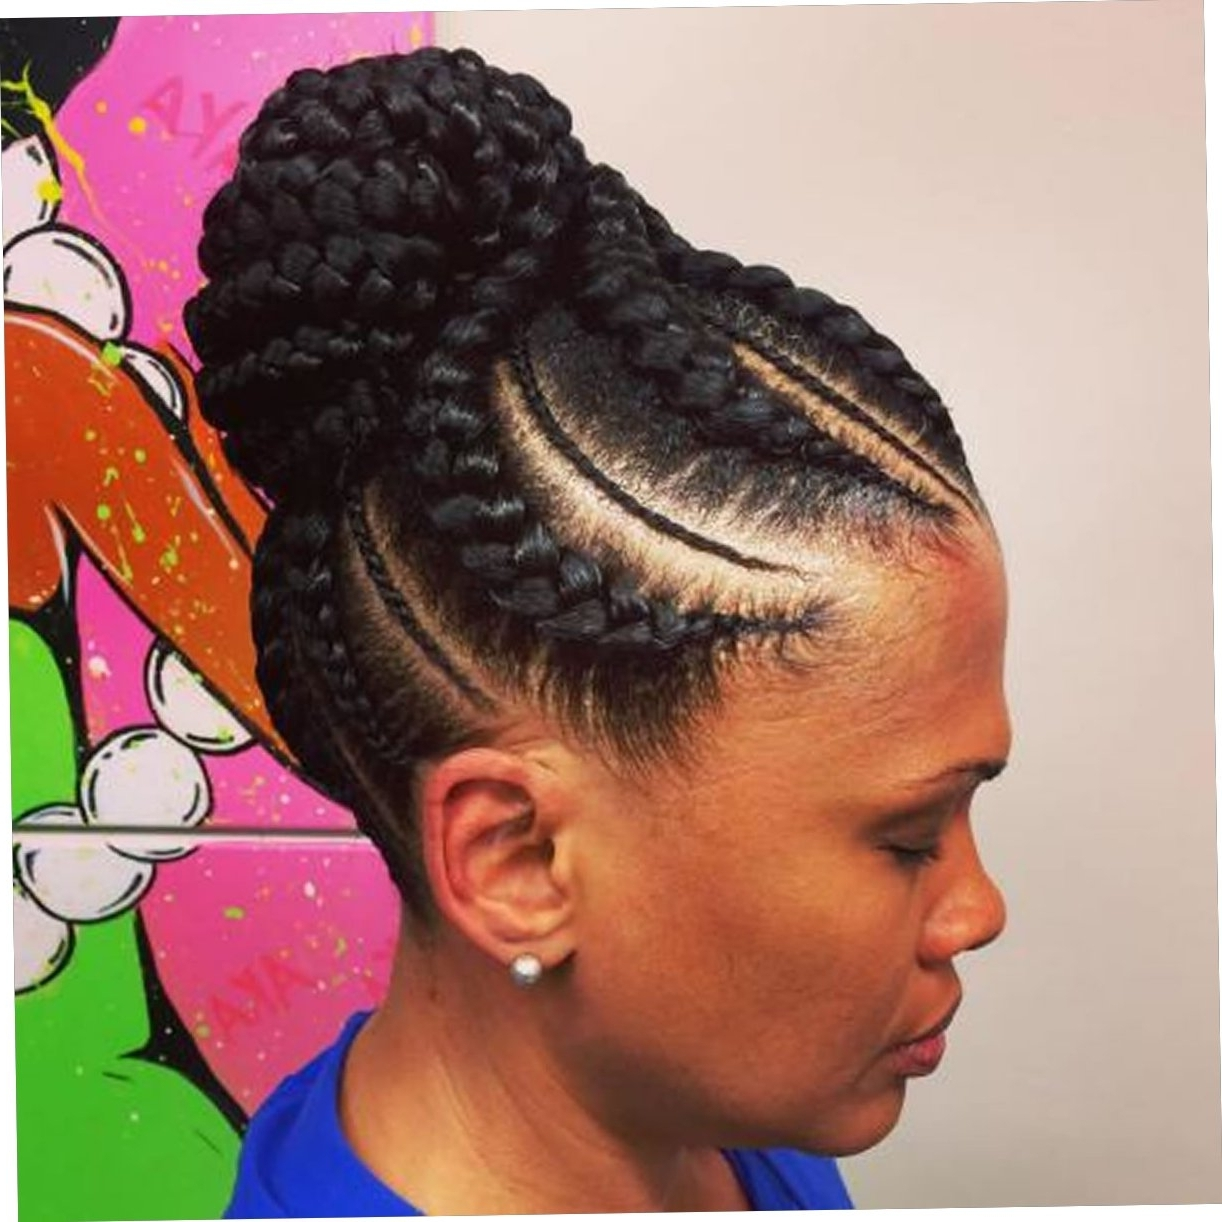 20 Best African American Braided Hairstyles For Women 2017 2018 With Regard To Well Liked African American Braided Hairstyles (View 2 of 15)